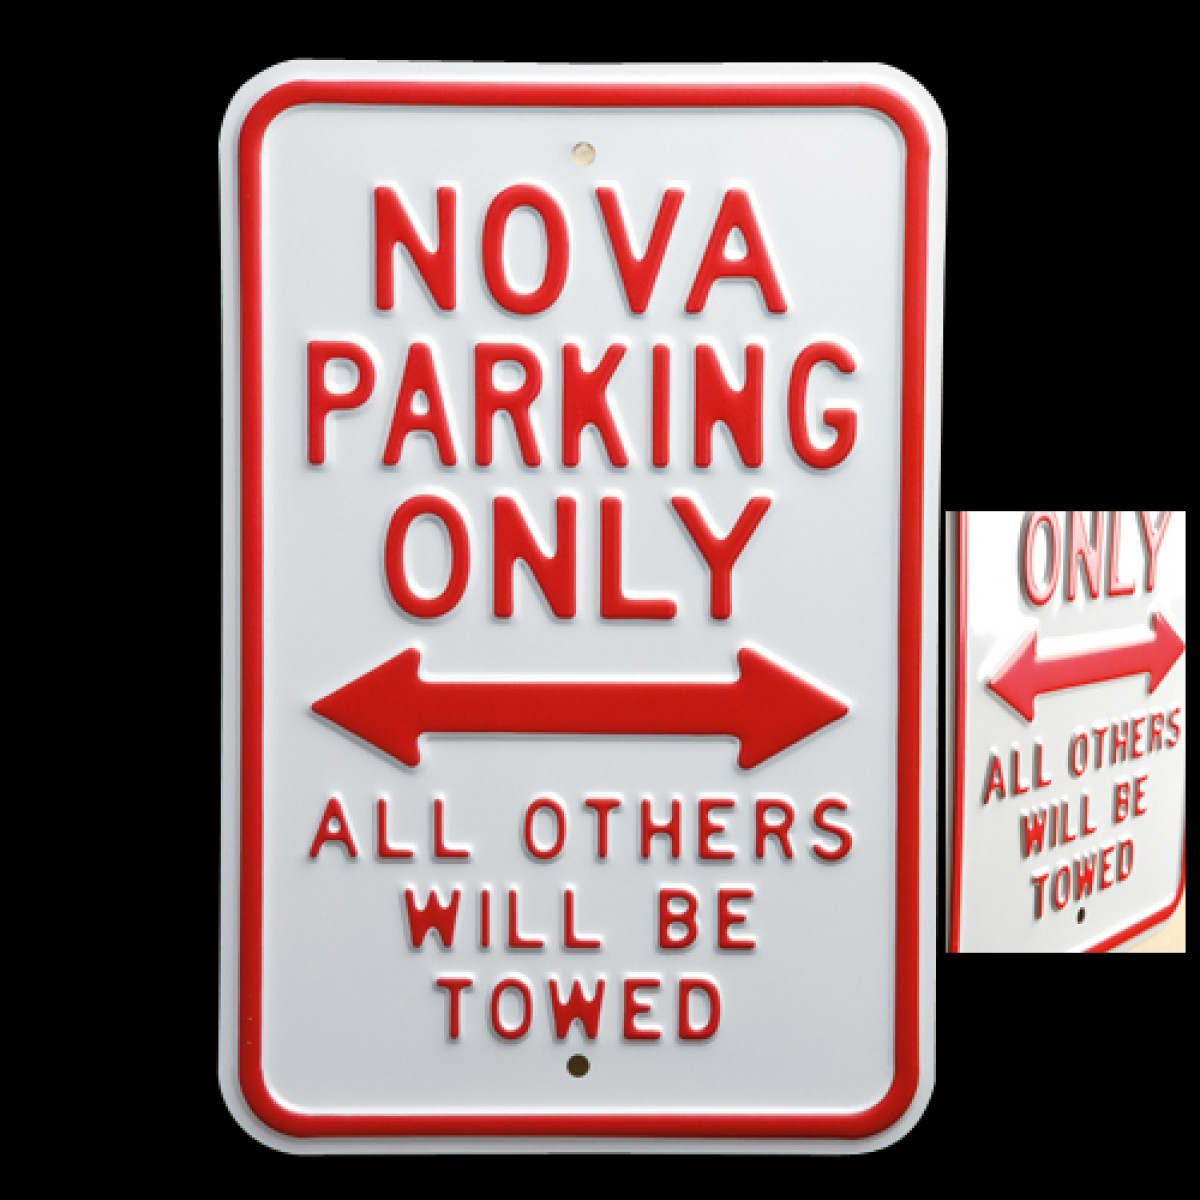 hossrodscom chevy nova parking sign hot rod accessories garage gear